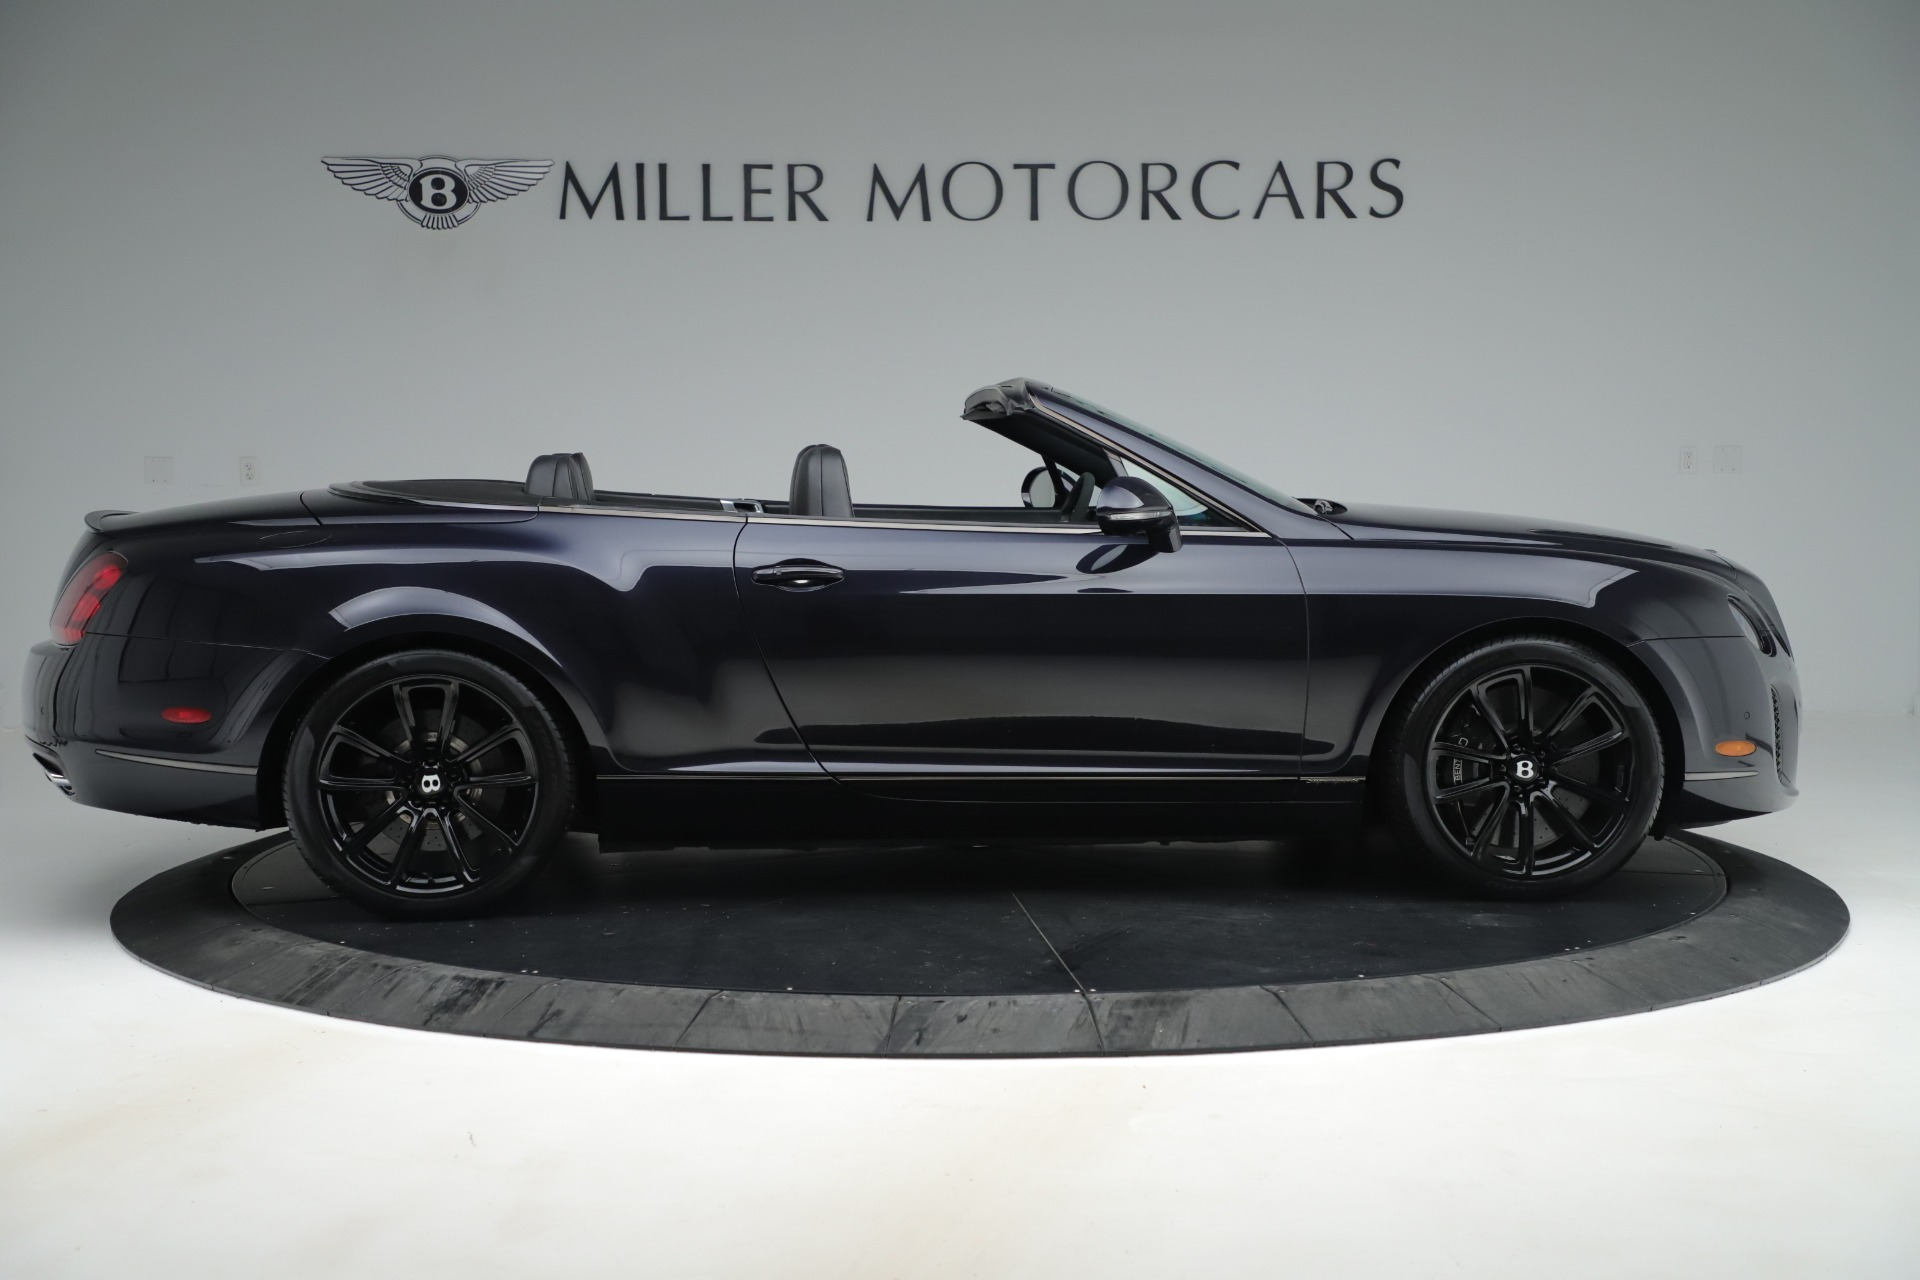 Used 2012 Bentley Continental Supersports Supersports For Sale In Greenwich, CT 3214_p9